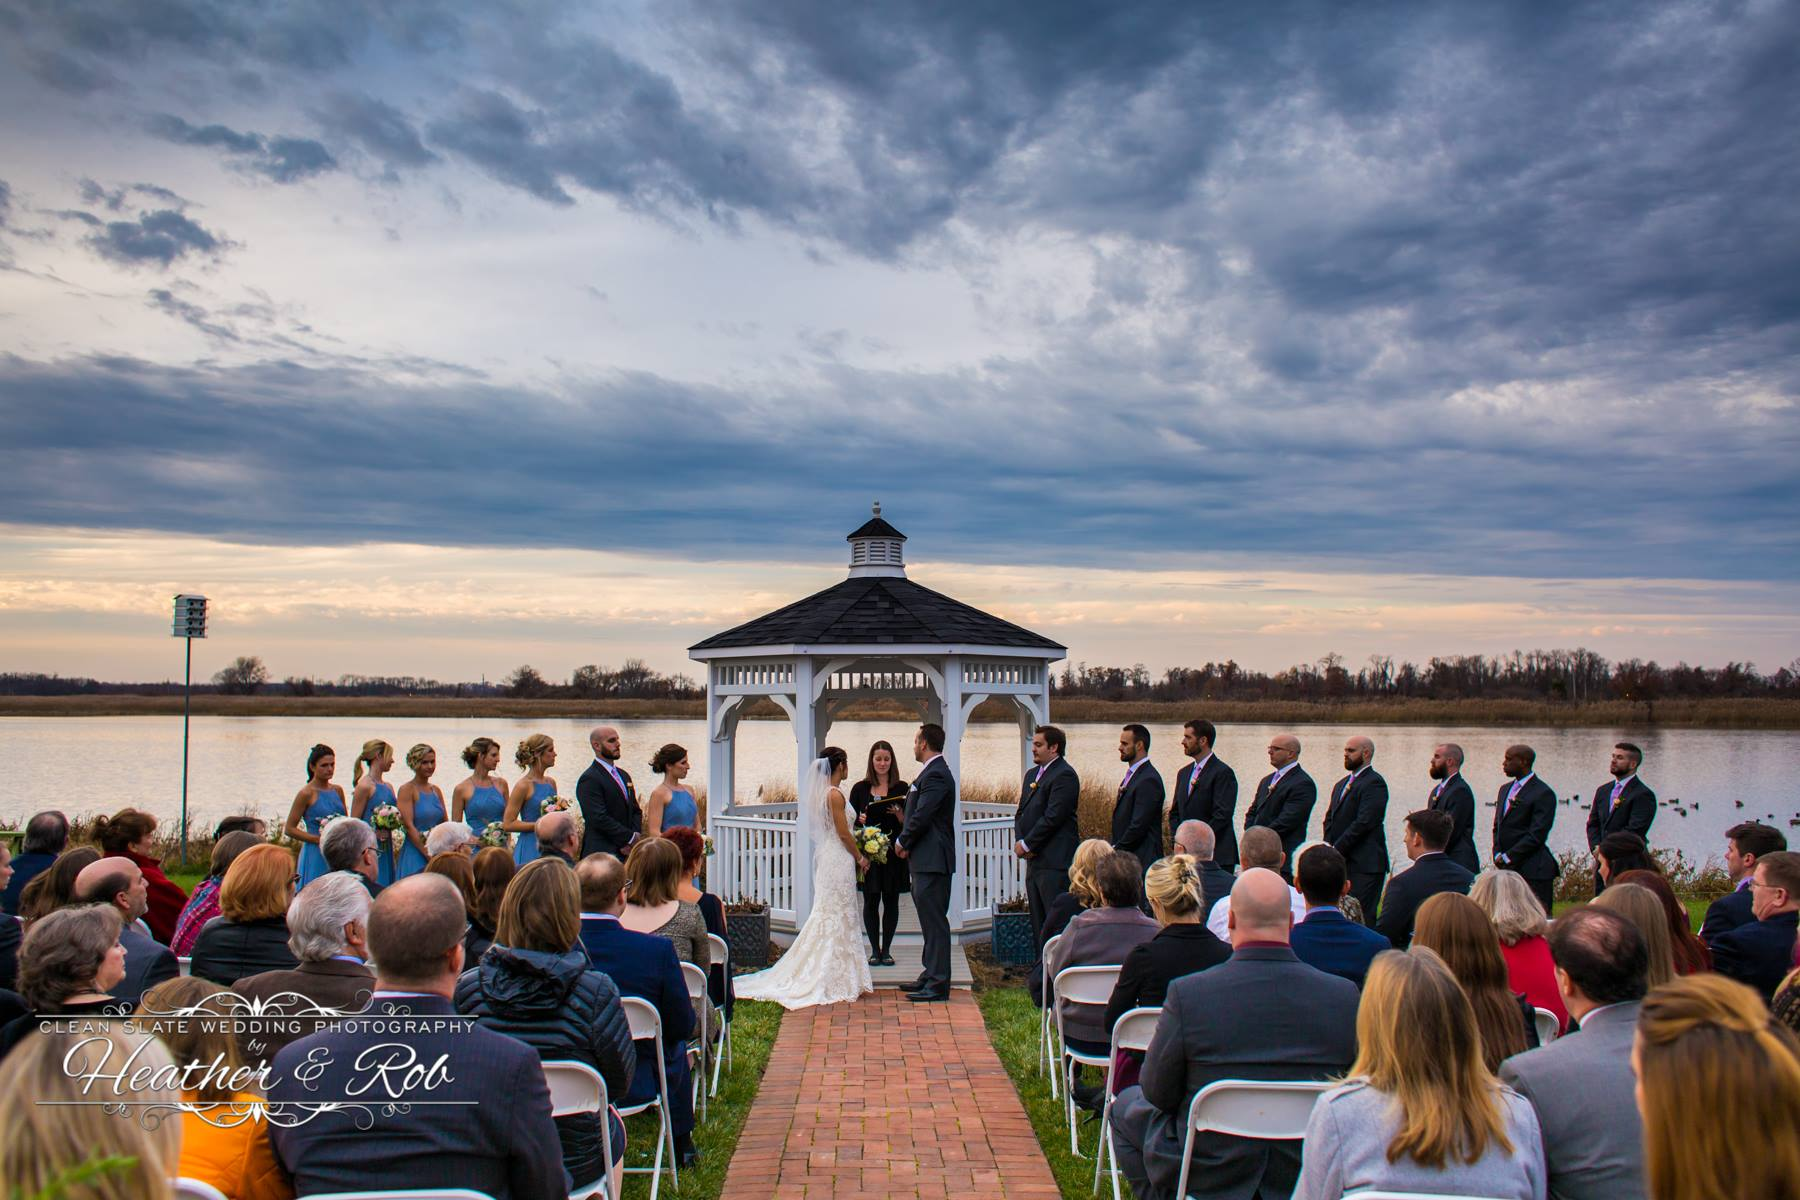 ceremony by gazebo by the water